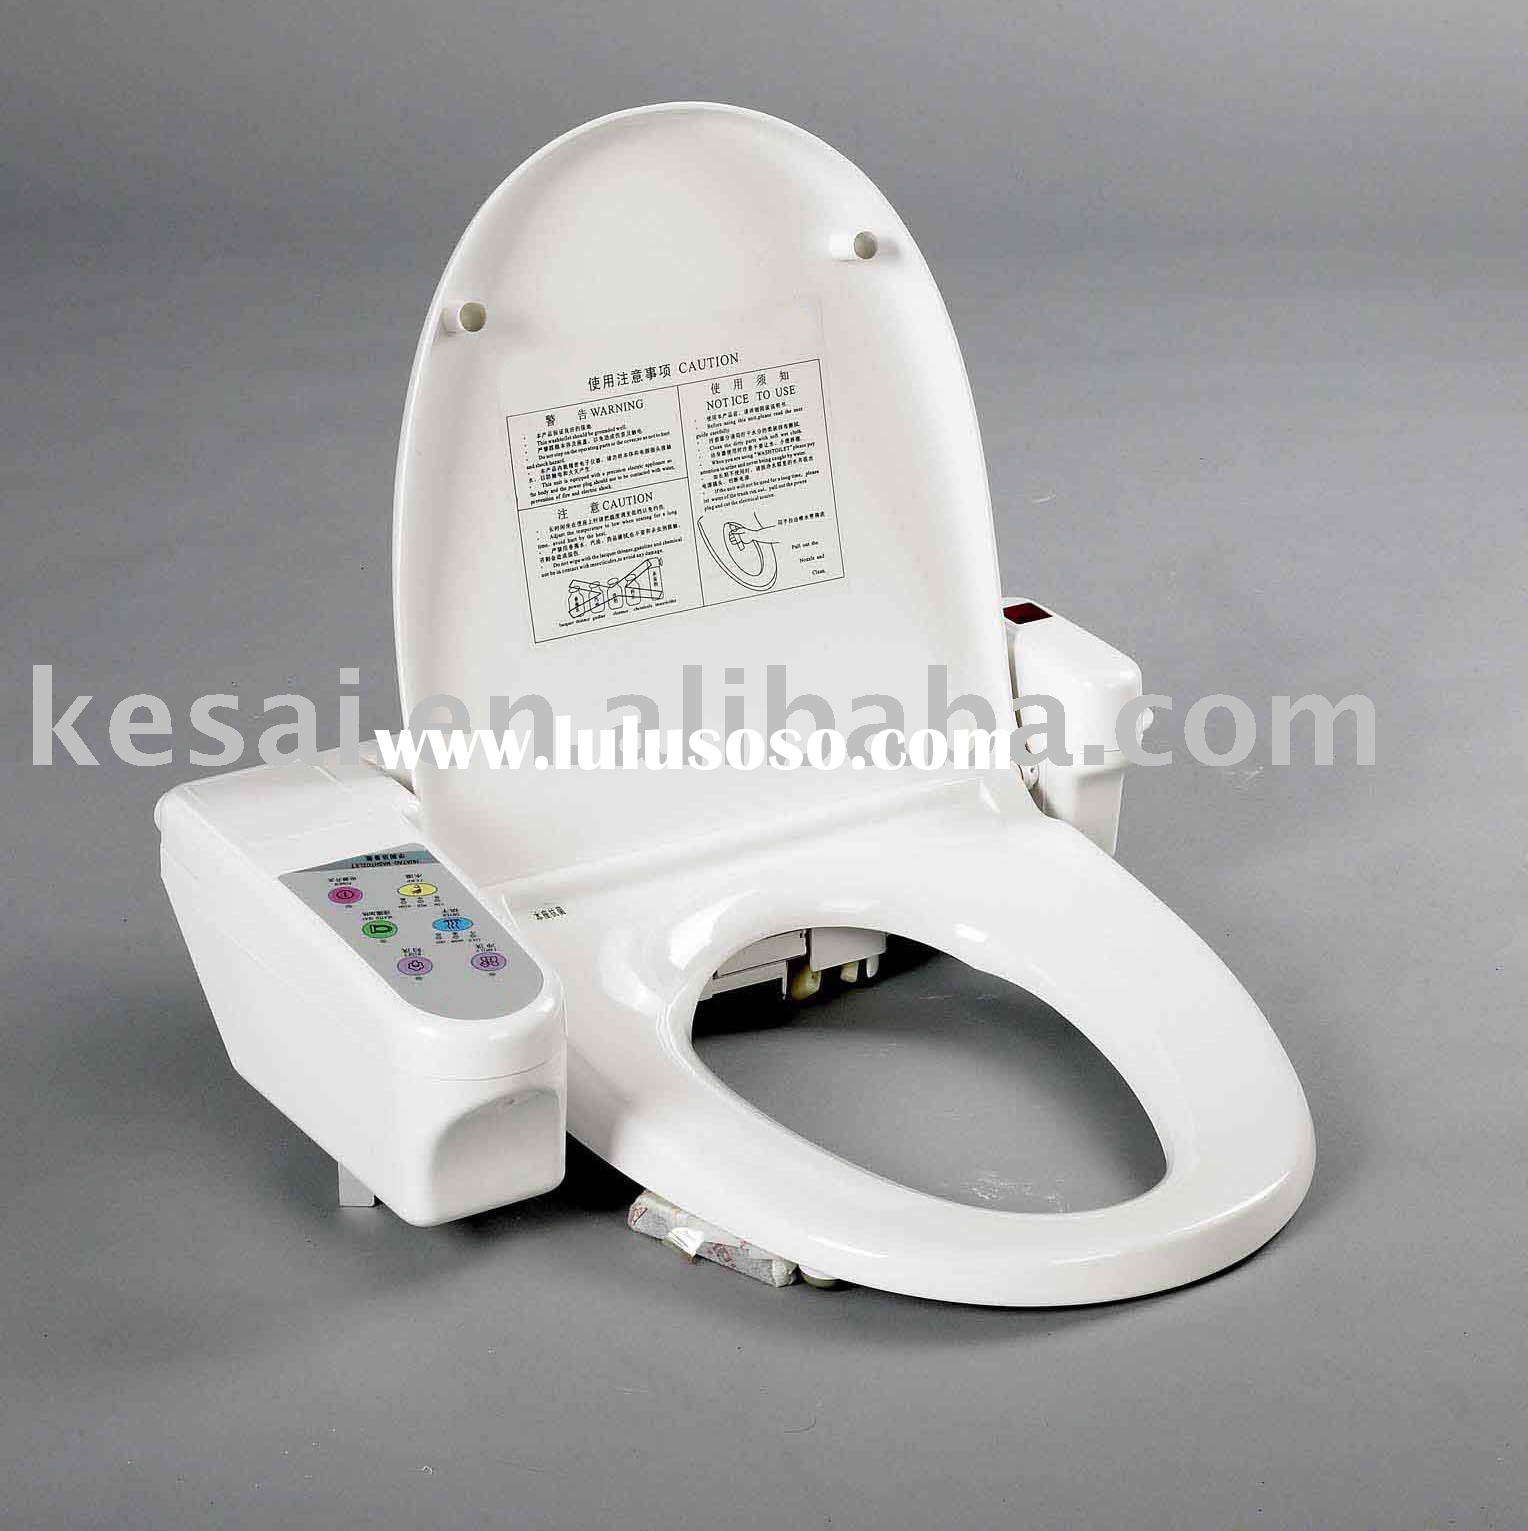 Automatic Body-cleaning Toilet seat cover, Intelligent Sanitary Toilet Seat,toilet cover, Toilet bid